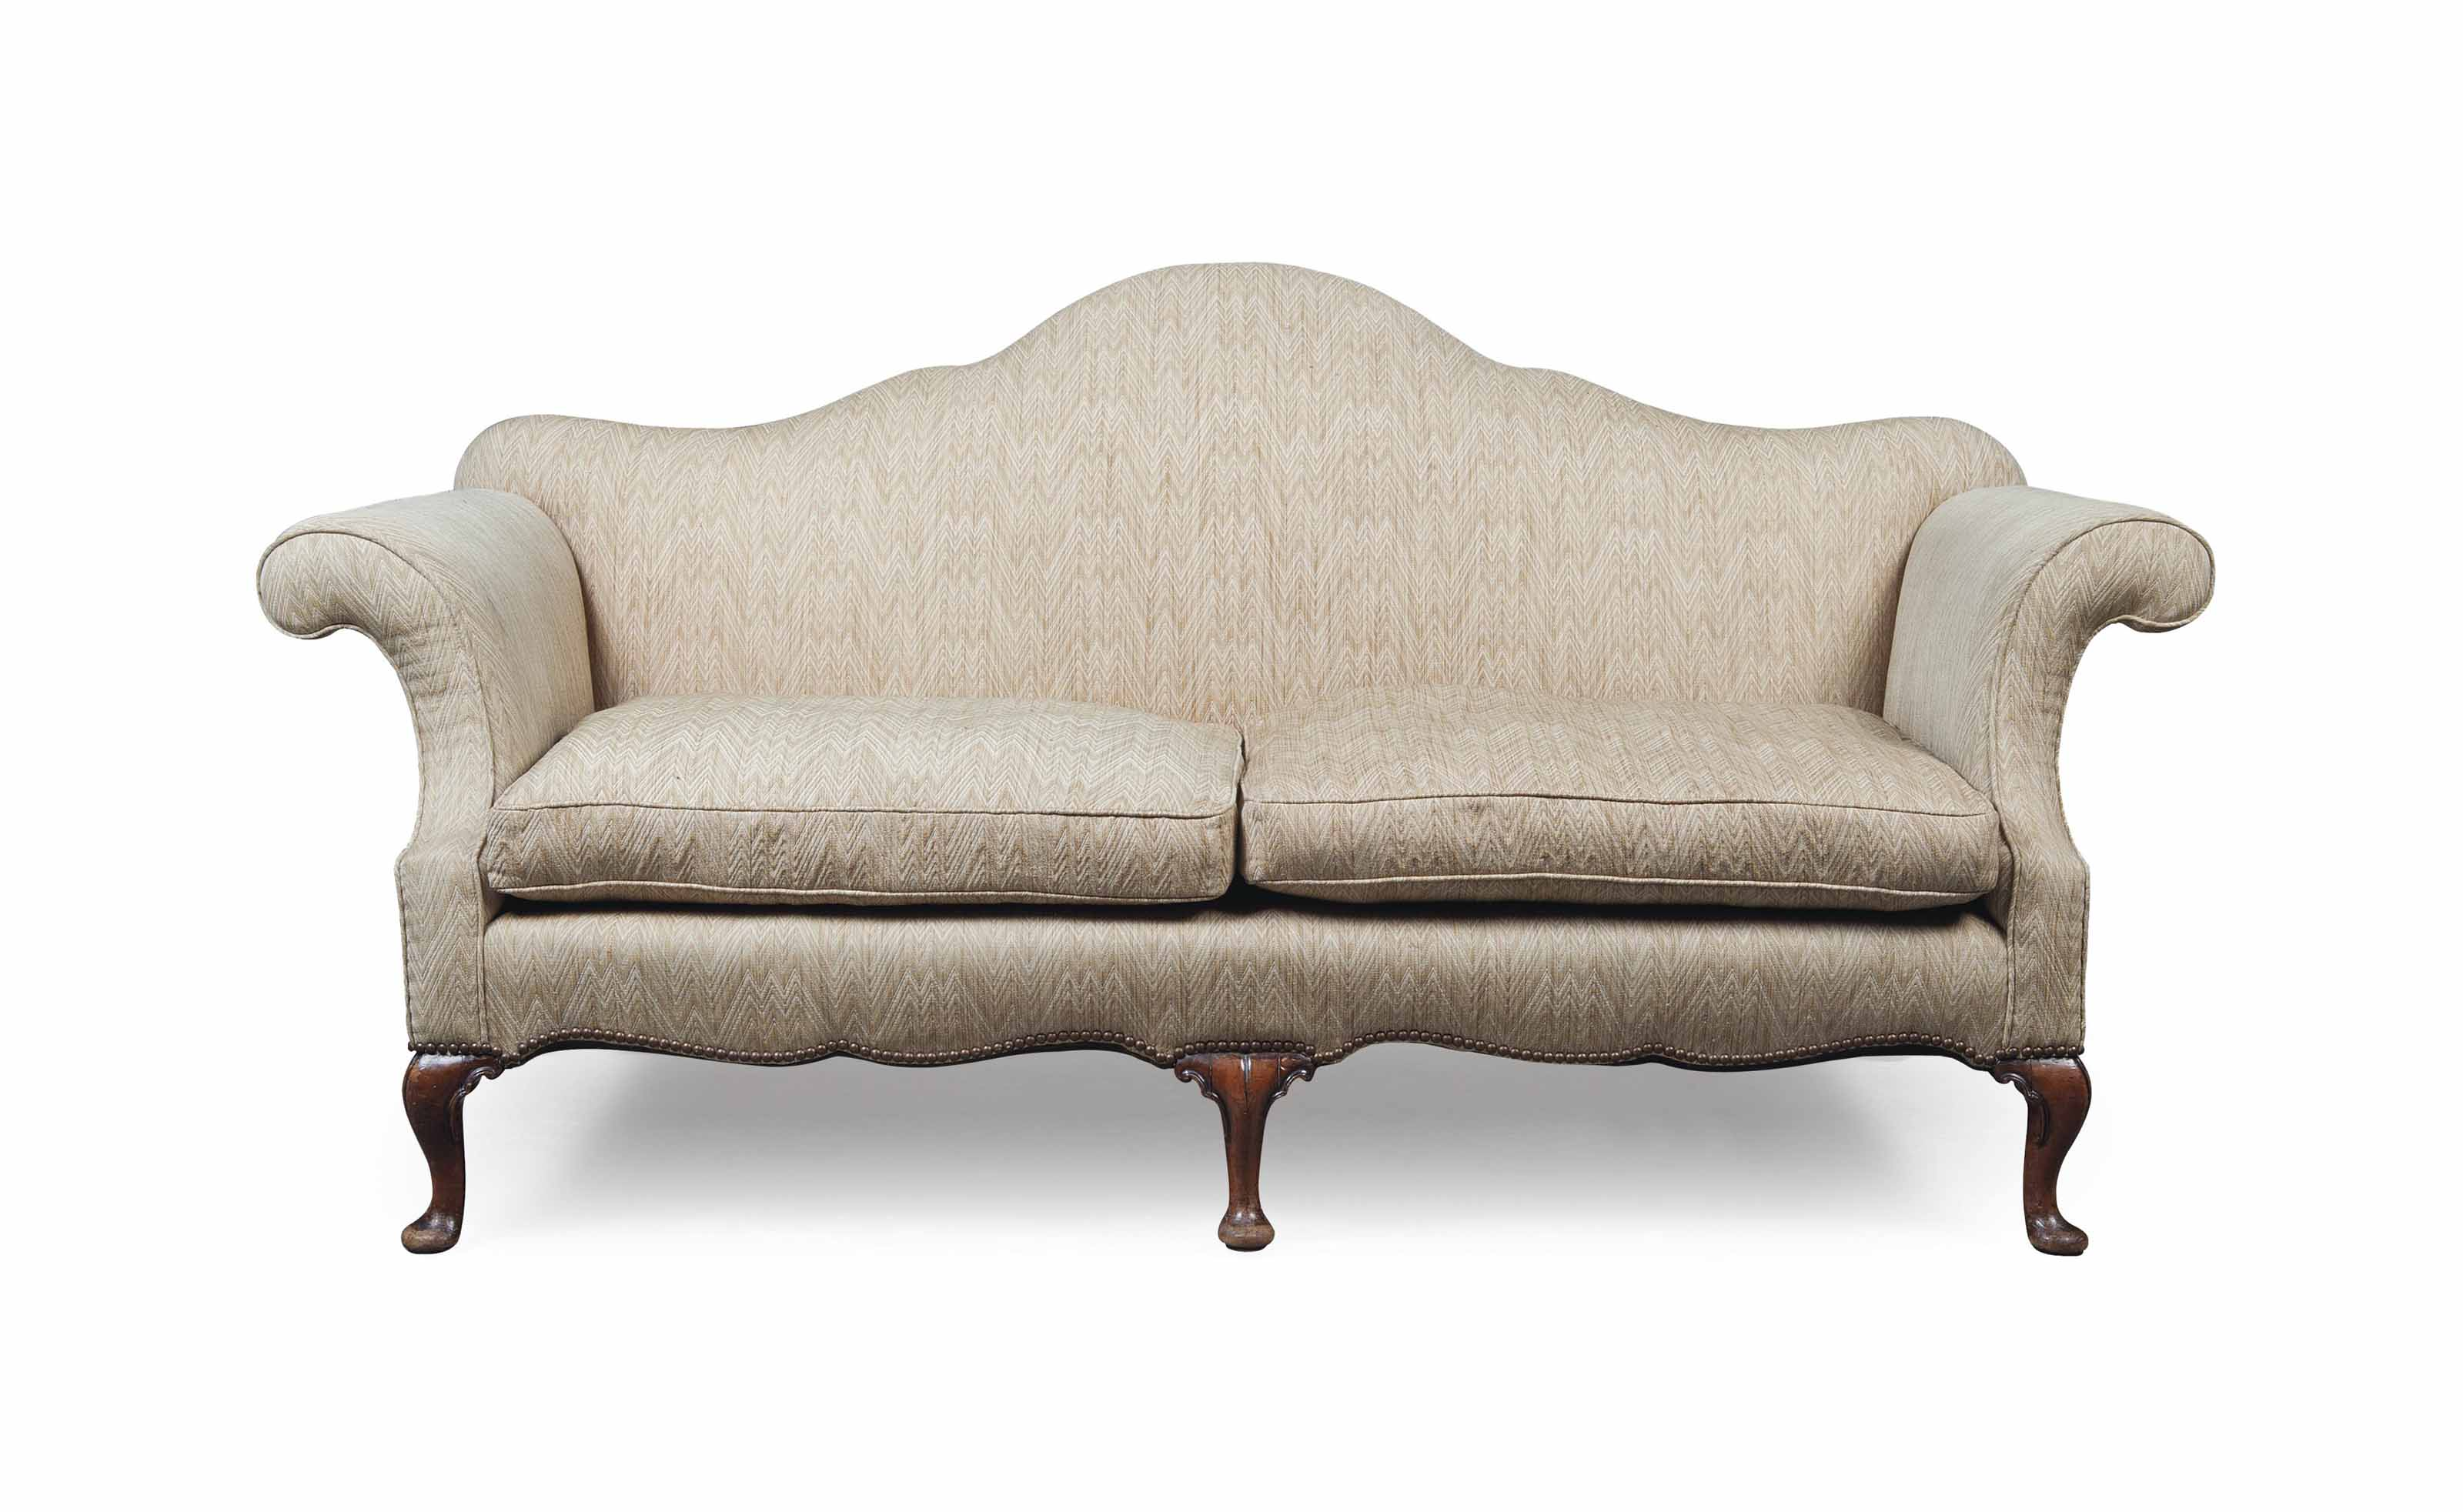 Strange A Large Hump Back Cabriole Leg Sofa Early 20Th Century Of Ncnpc Chair Design For Home Ncnpcorg